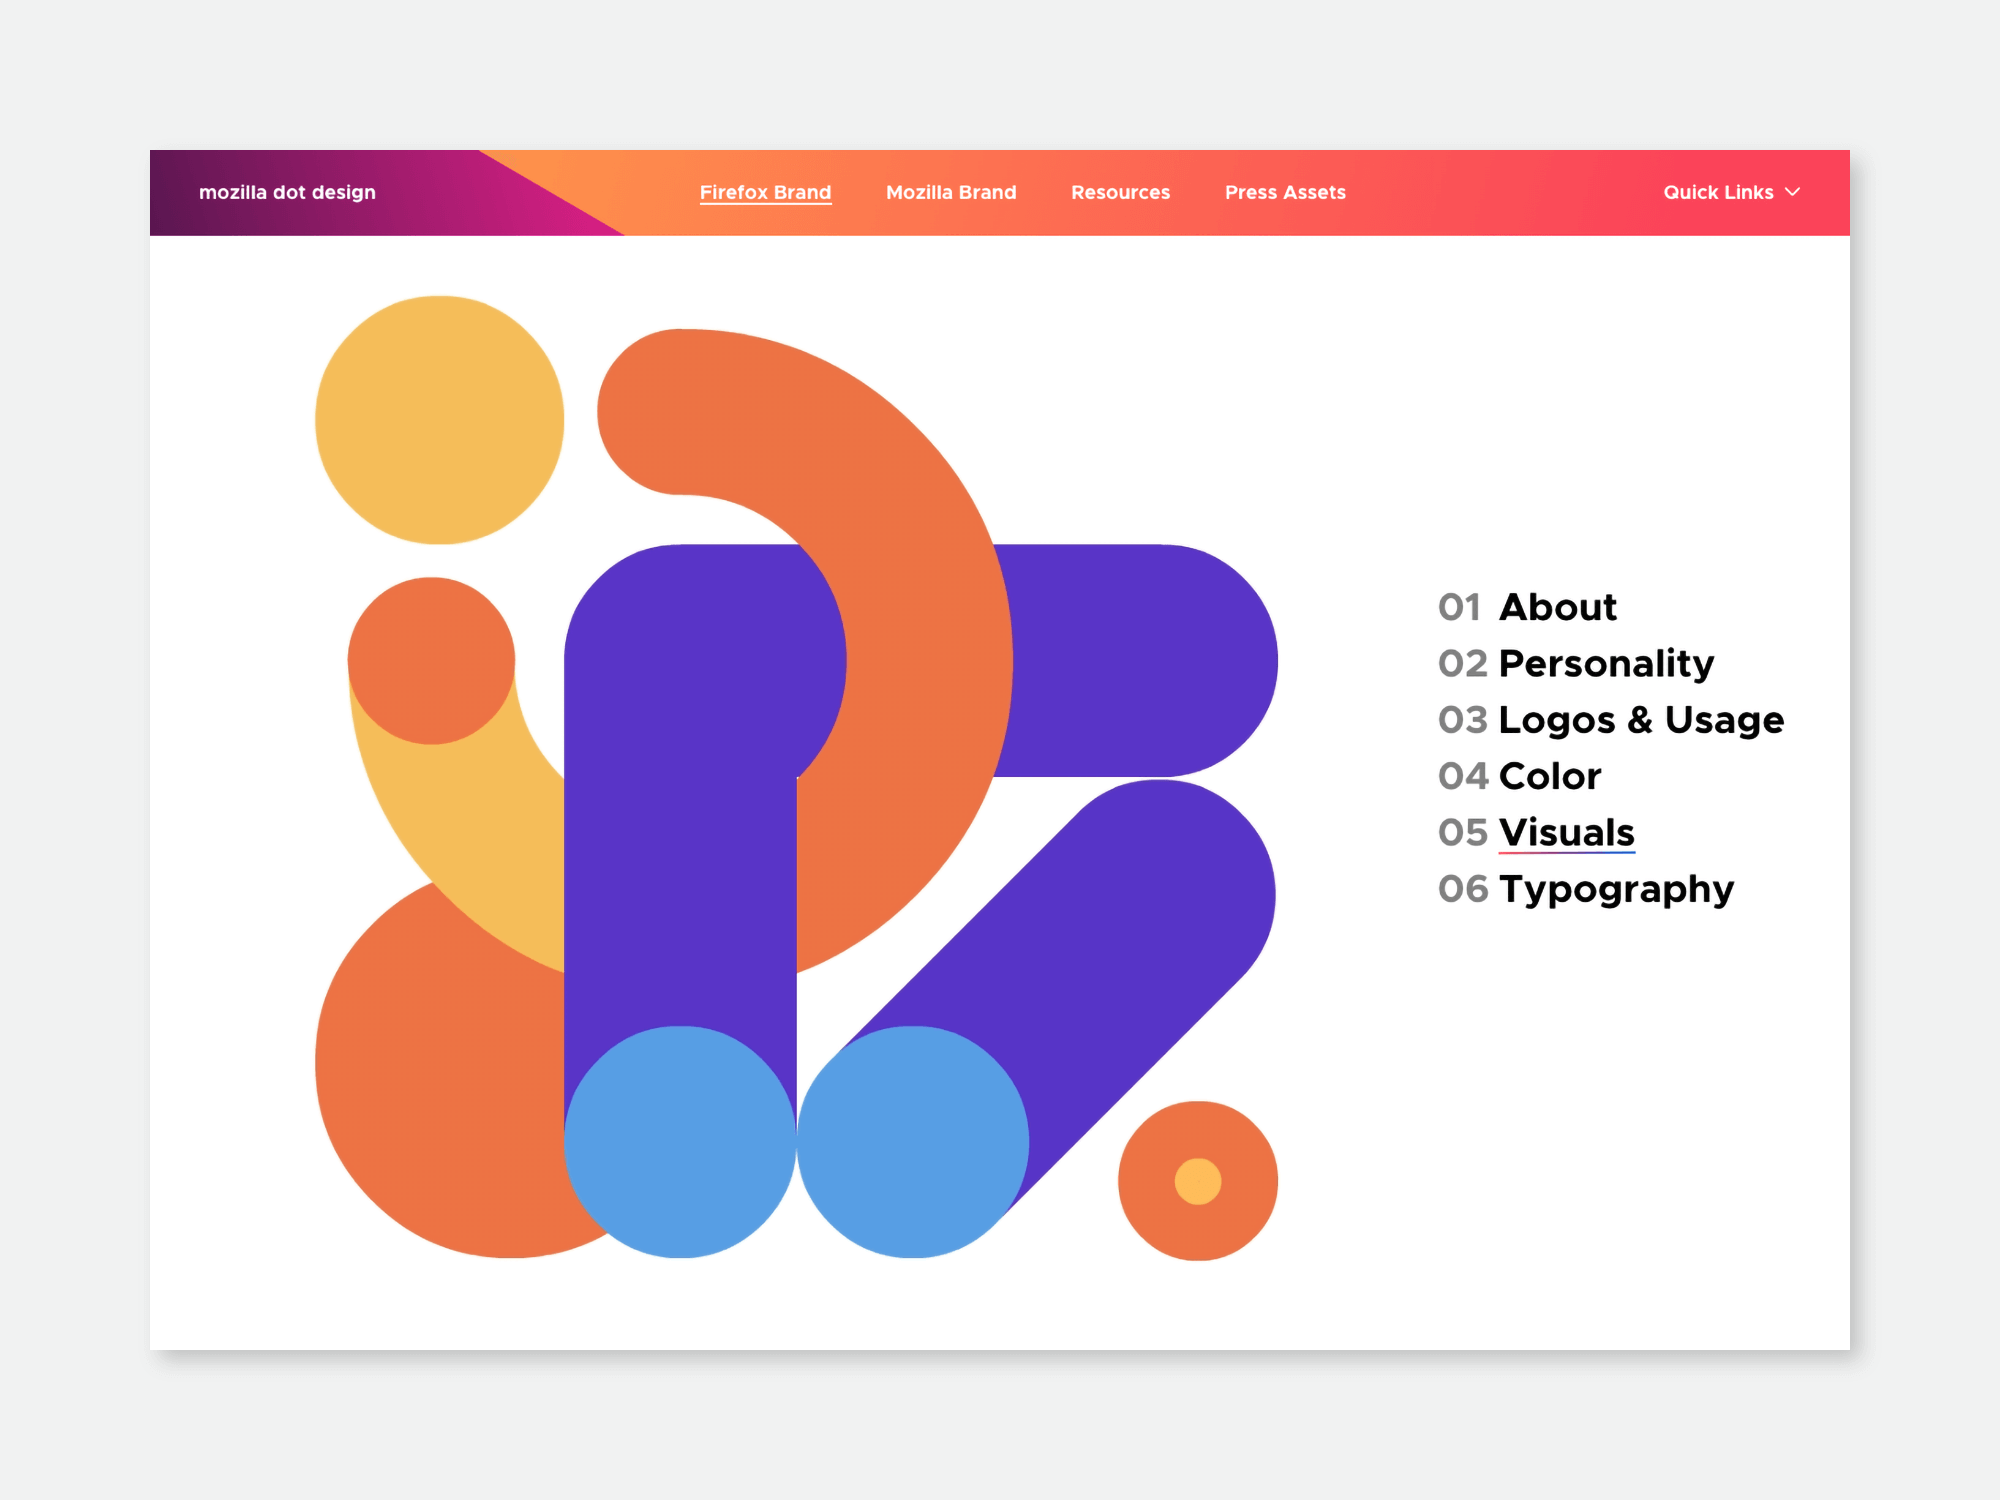 Visuals section of the Firefox brand